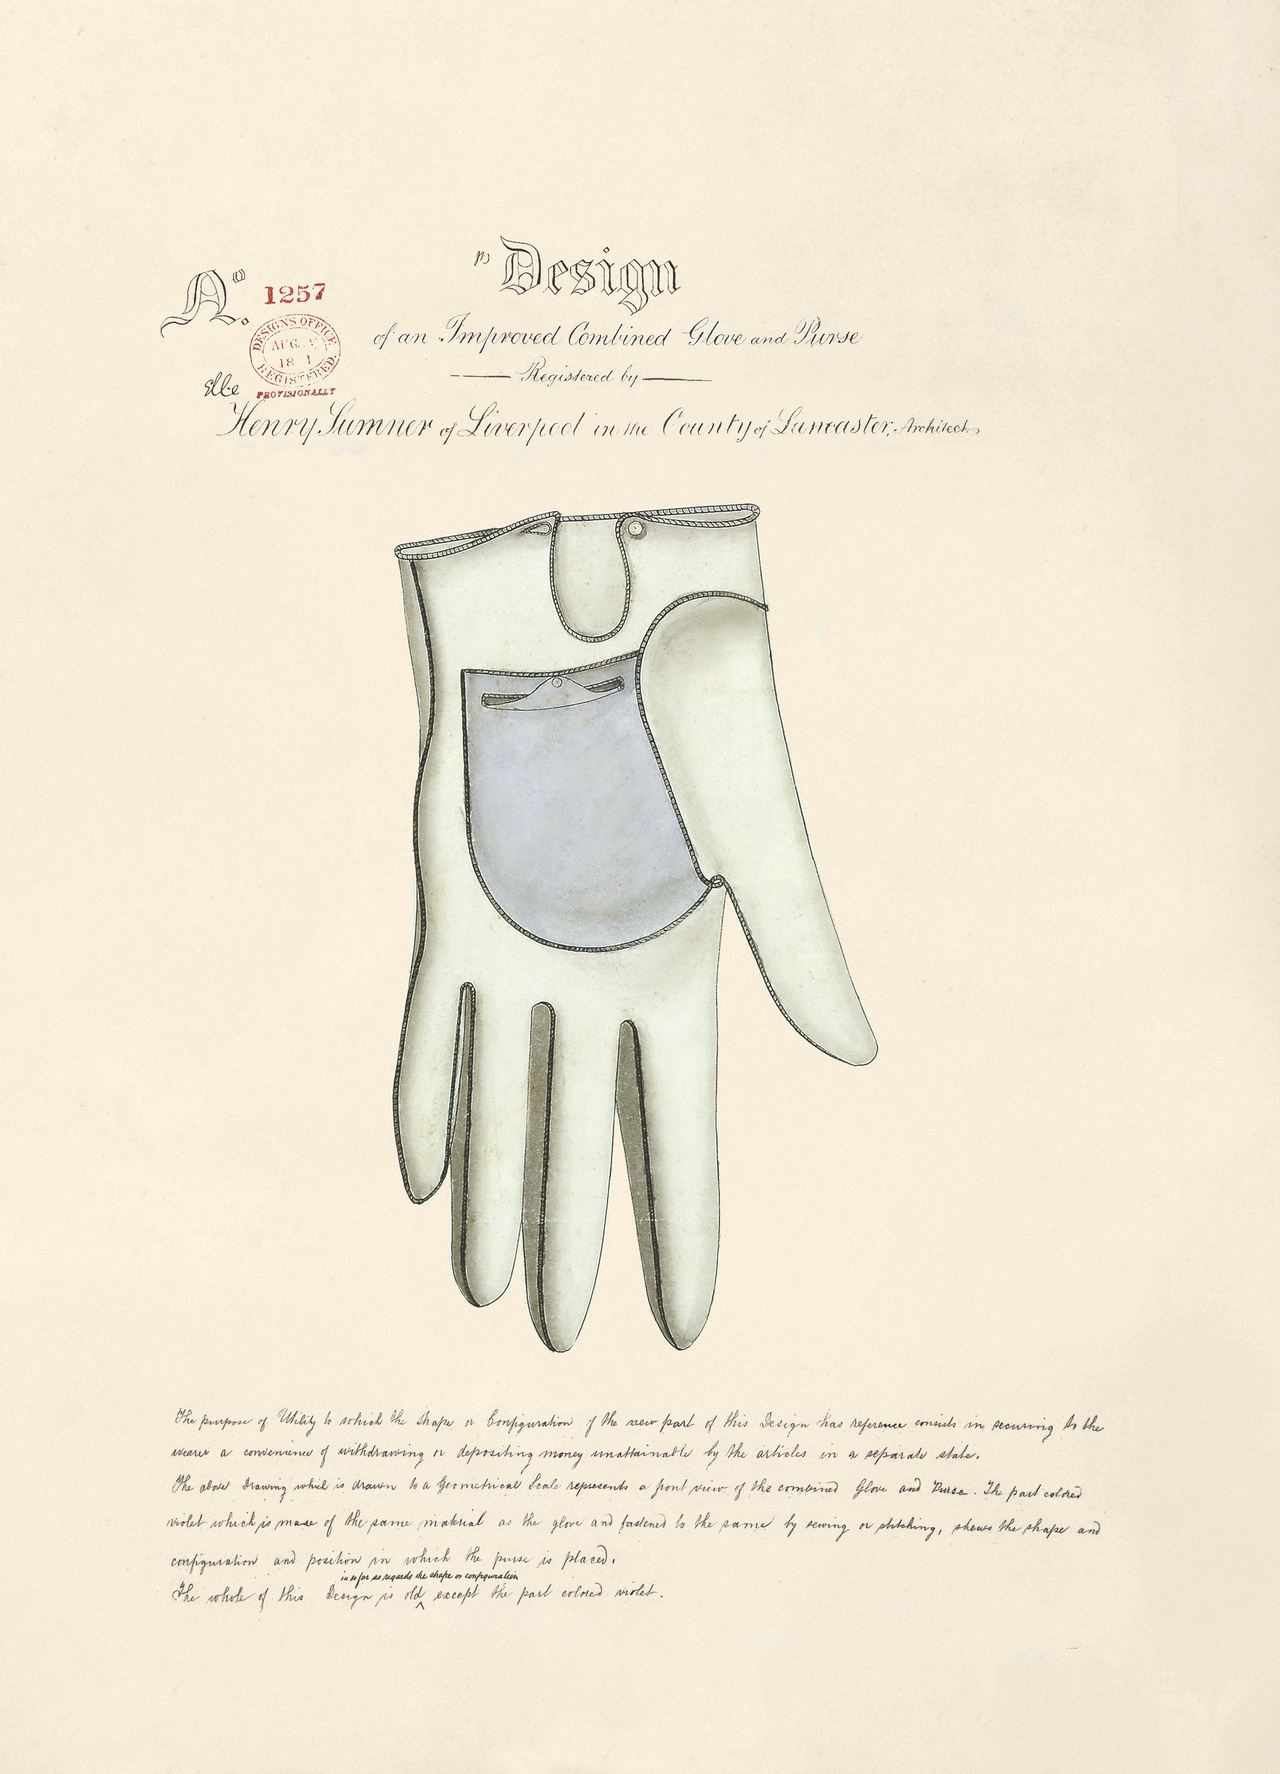 Design of an Improved Combined Glove and Purse by Henry Sumner, 1861 (BT 47/5) (The National Archives, London, England 2014. © 2014 Crown Copyright)